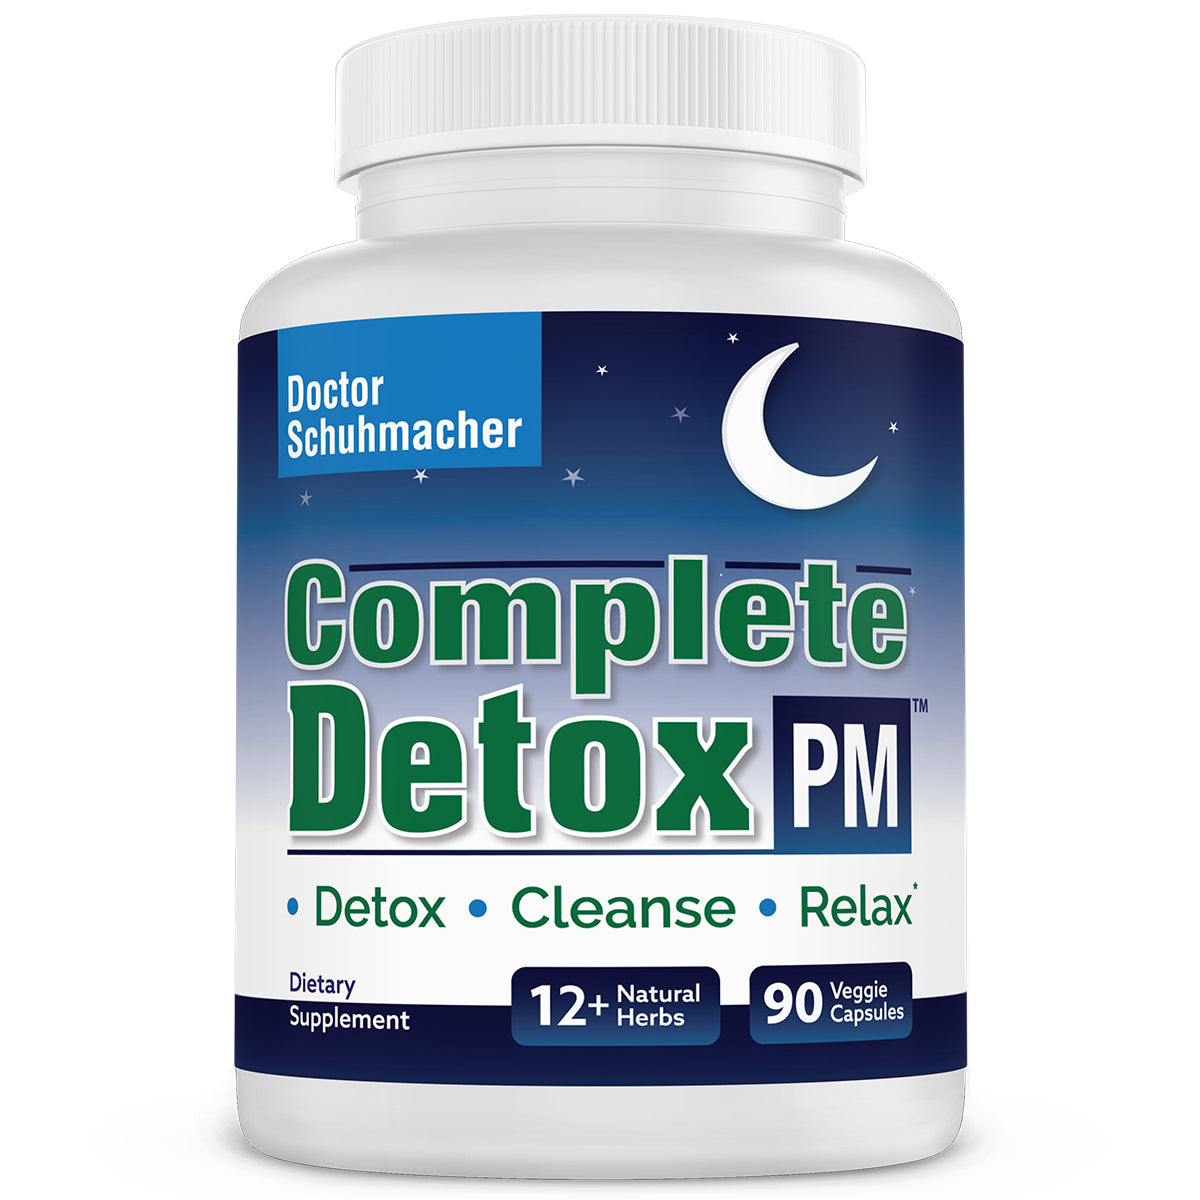 Longevity Complete Detox PM: Gentle whole body detox with support for liver, colon, lymph, kidney and deep relaxation. Best detox supplement.